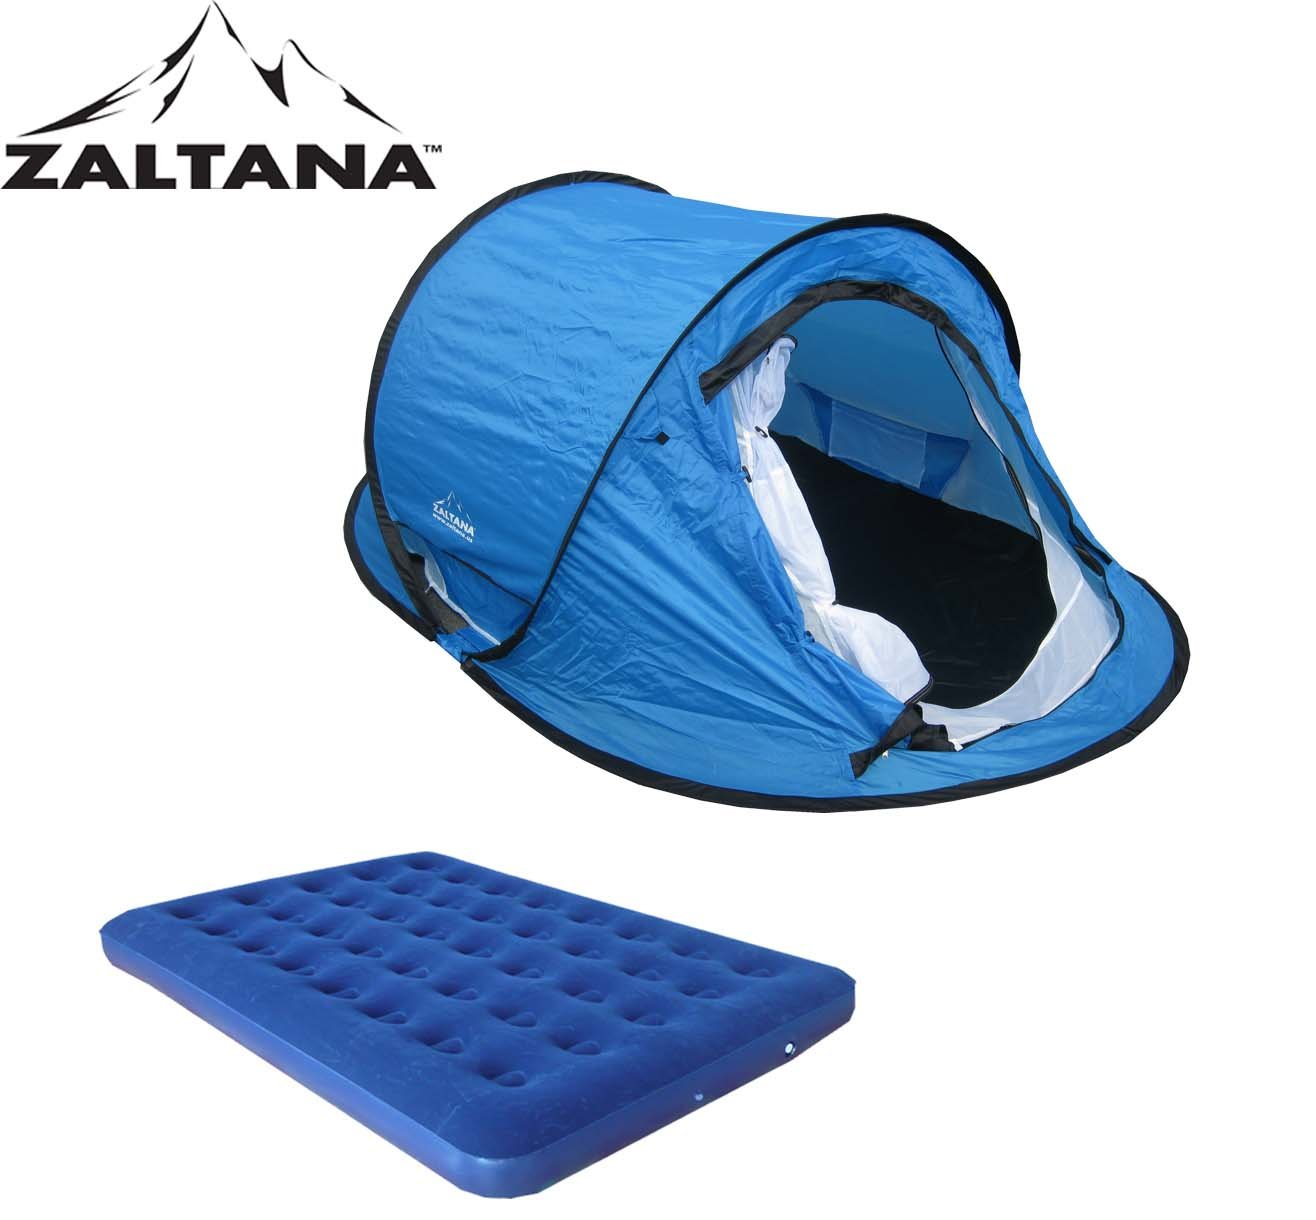 Amazon.com  POP UP TENT WITH AIR MATTRESS(DOUBLE) SET  Family Tents  Sports u0026 Outdoors  sc 1 st  Amazon.com & Amazon.com : POP UP TENT WITH AIR MATTRESS(DOUBLE) SET : Family ...